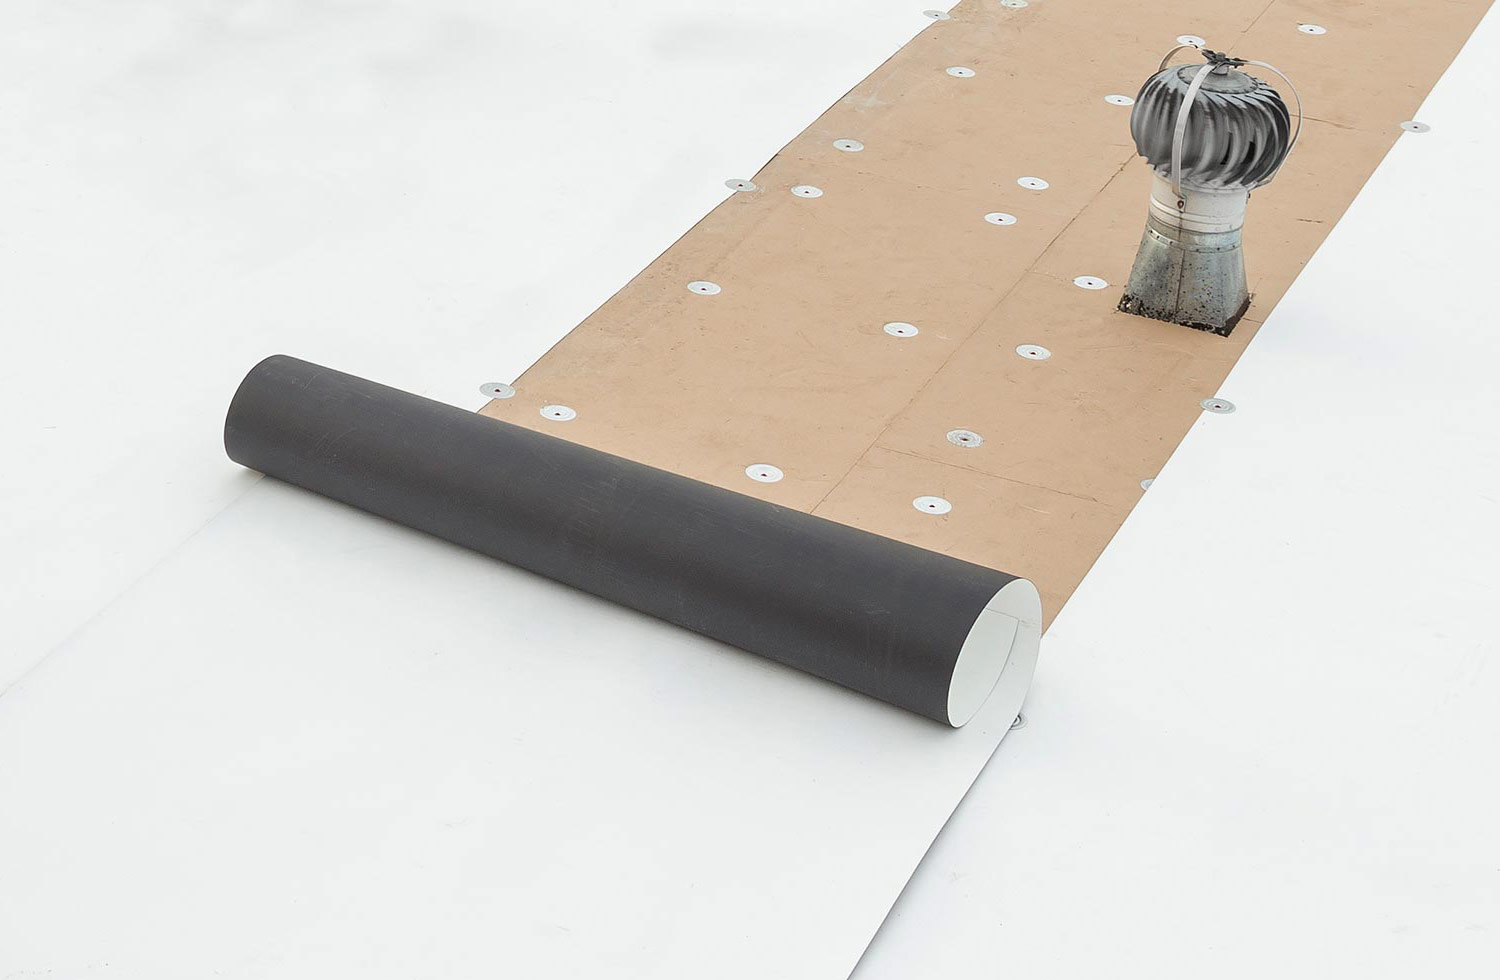 tpo membrane being rolled on top of mechanically fastened polyiso insulation